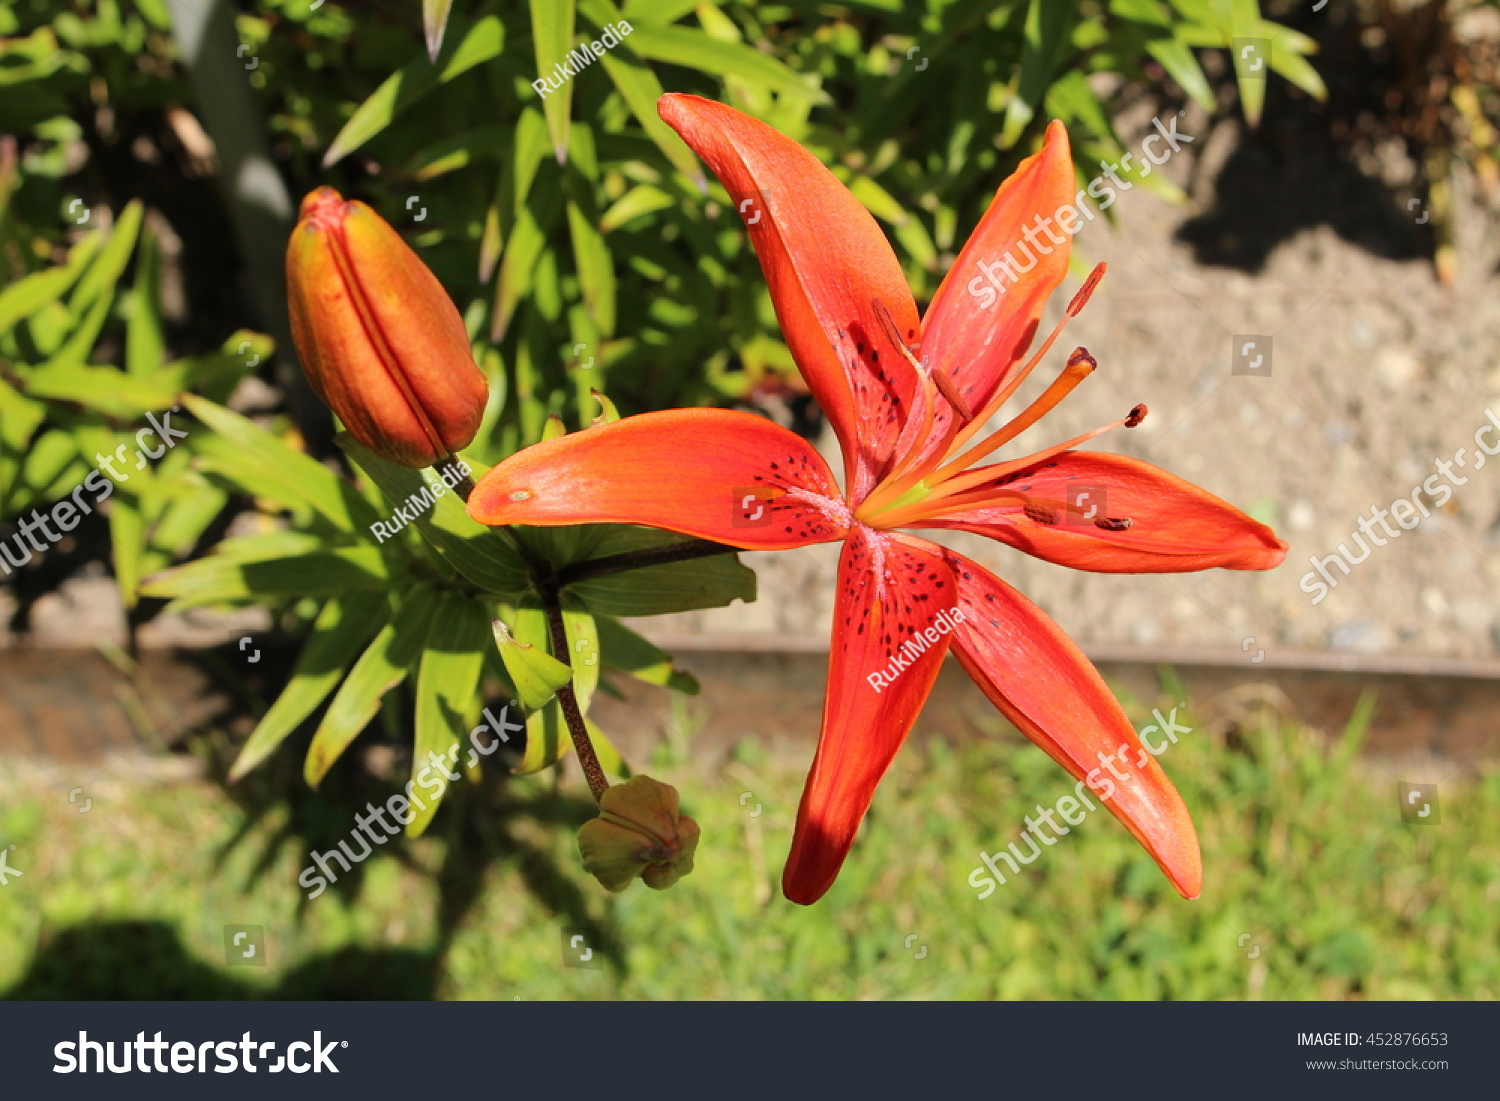 Spotted red tiger lily flowers or stock photo edit now 452876653 spotted red tiger lily flowers or devil lily in st gallen izmirmasajfo